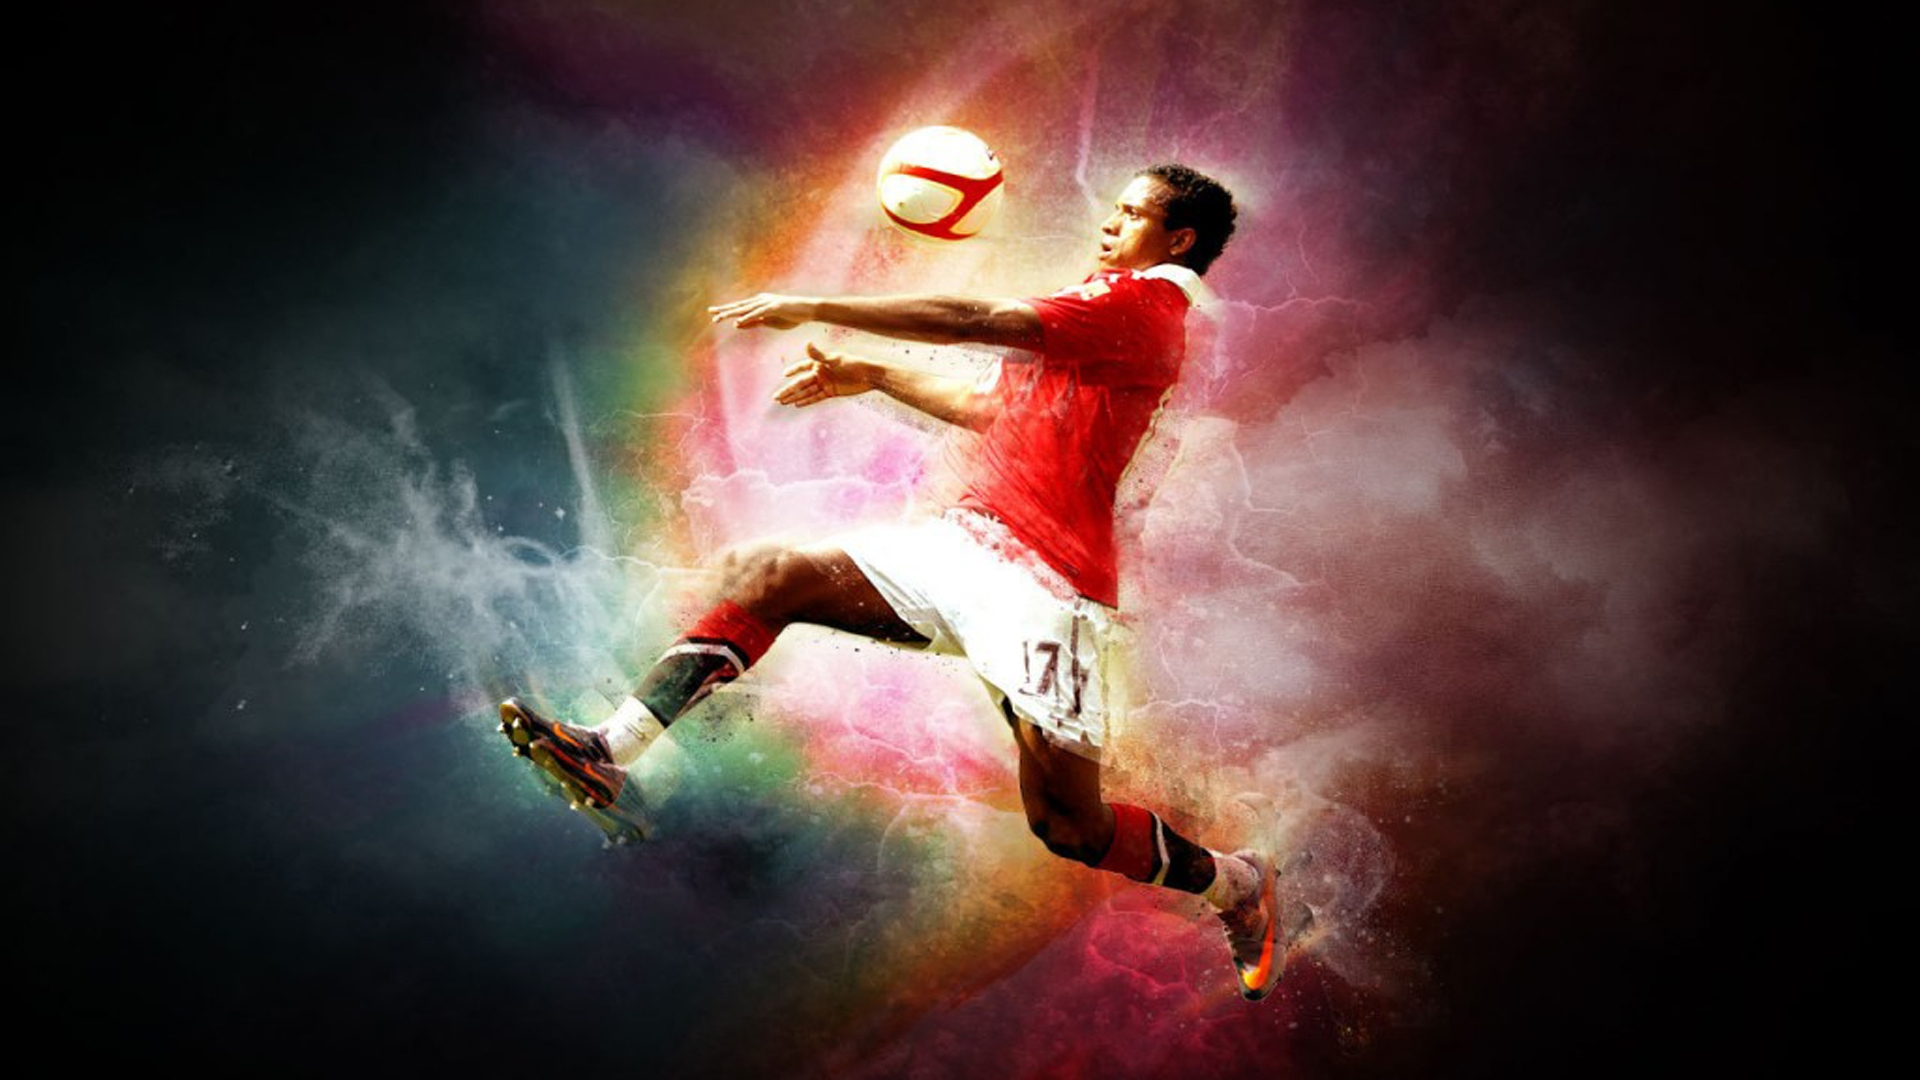 Nani Players Football Sports Wallpaper